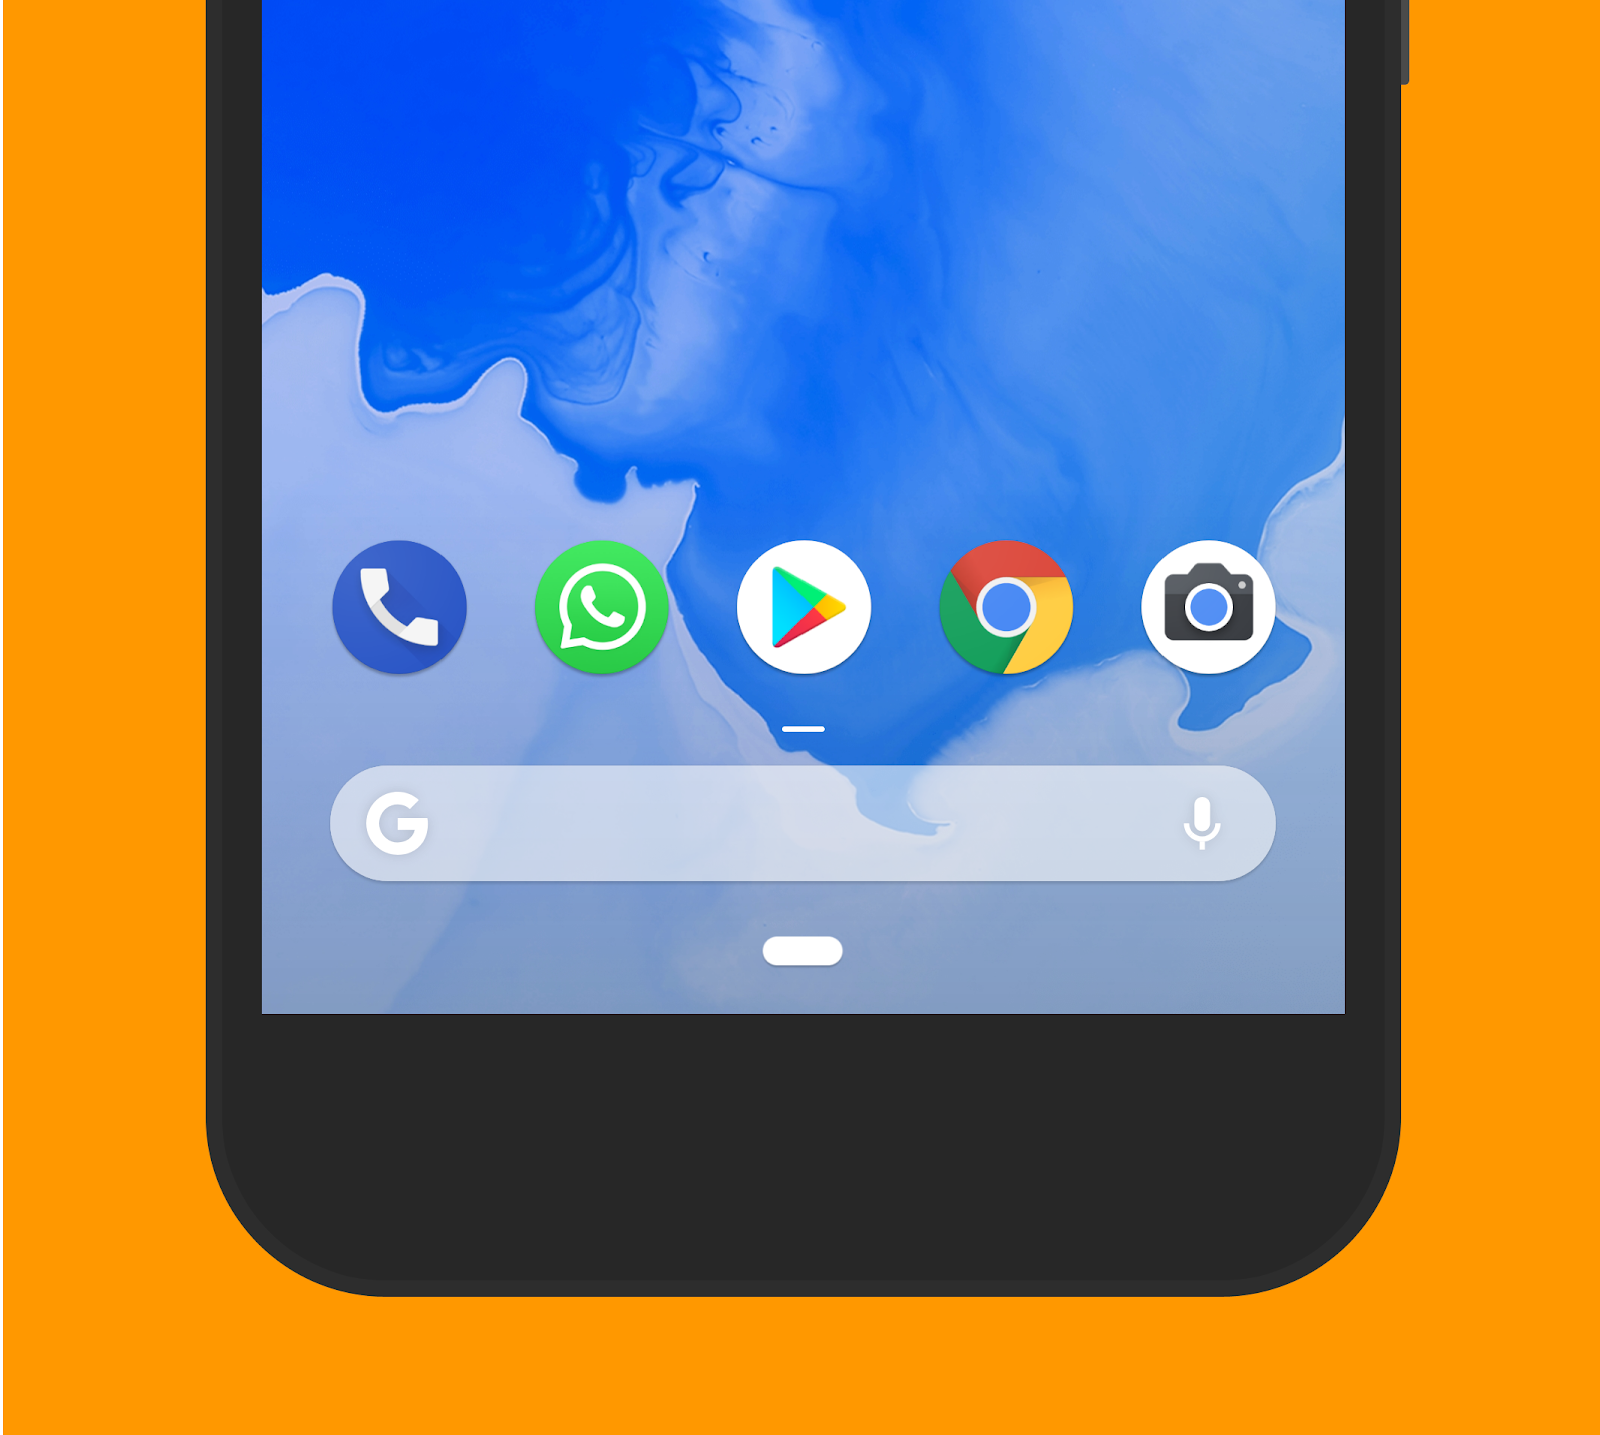 8000 Wallpaper Android P Hd  Paling Keren